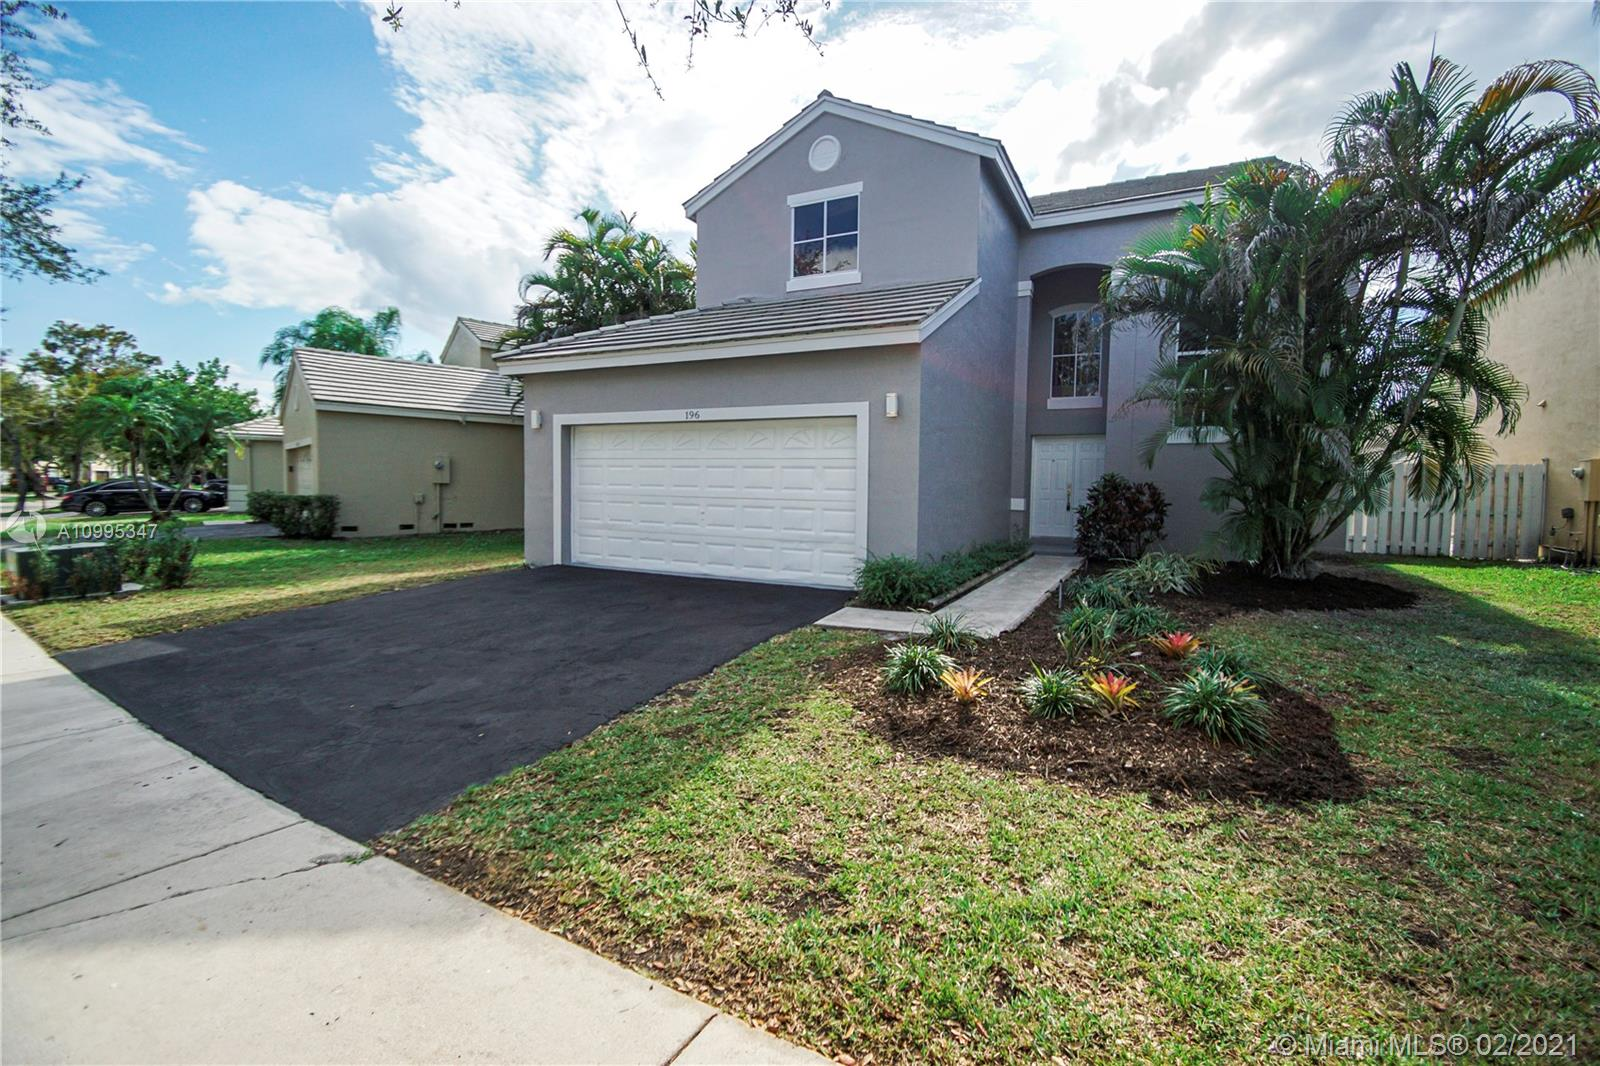 This home features 5 Bedrooms 3 1/2 Baths One of a kind fully renovated home with a 2 car garage, a spacious private backyard with a small Pool. Professionally decorated w/ Tiles & Vinyl Waterproof Floors. Modern kitchen w/ quartz countertops and NEW stainless steel appliances. Bathrooms remodeled with quartz tops. 1 Bedroom downstairs. NEW fresh Interior/Exterior Paint. NEW A/C. The community features 24 hours manned security, playgrounds, a pool with a clubhouse, and jogging paths around the community. Close to shopping, restaurants, and all major highways. TURN KEY Ready.